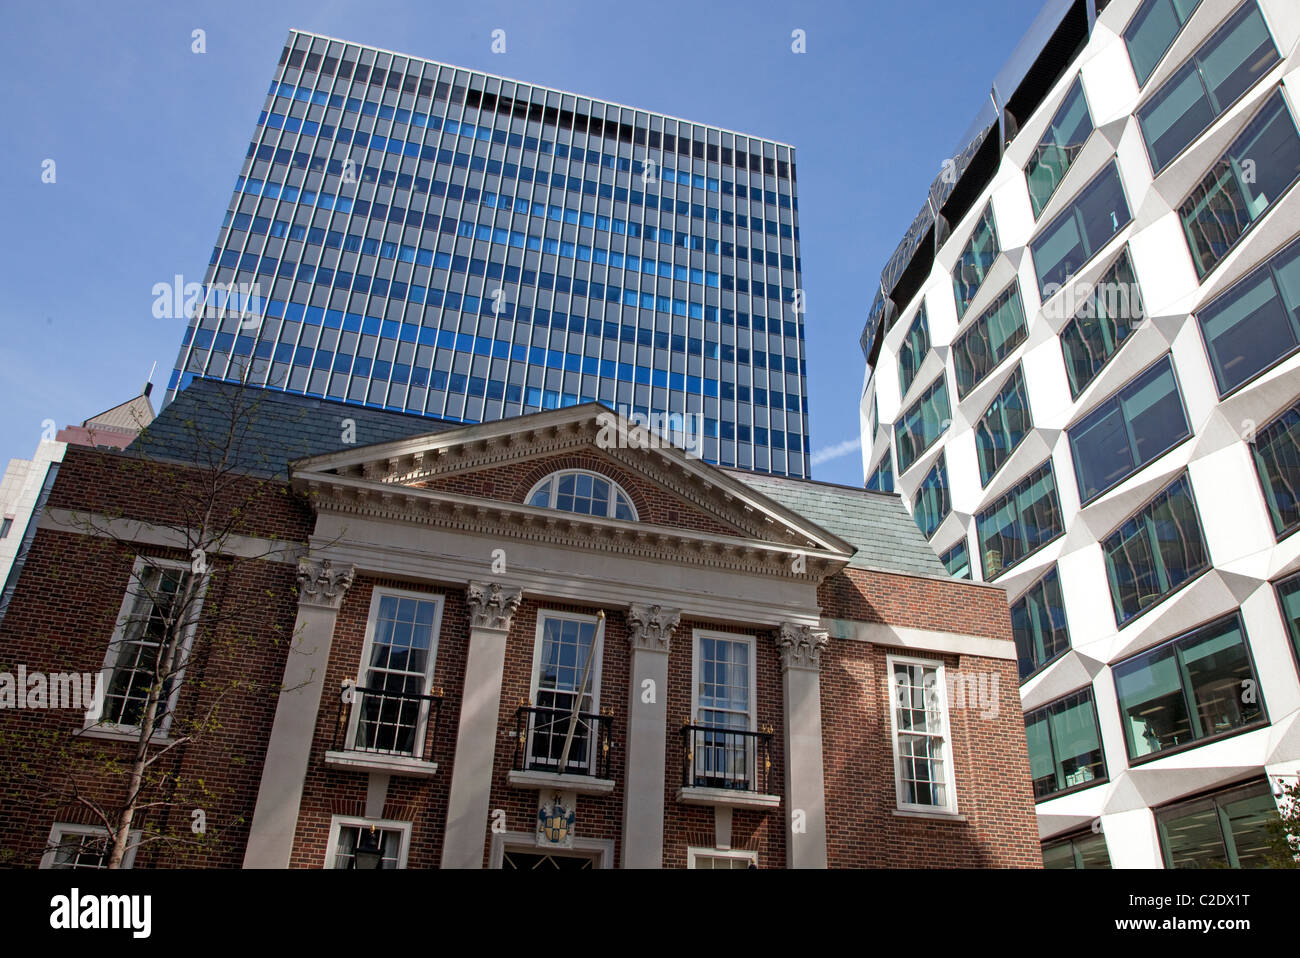 Contrasting architecture in City of London: Girdlers' Hall in foreground - Stock Image